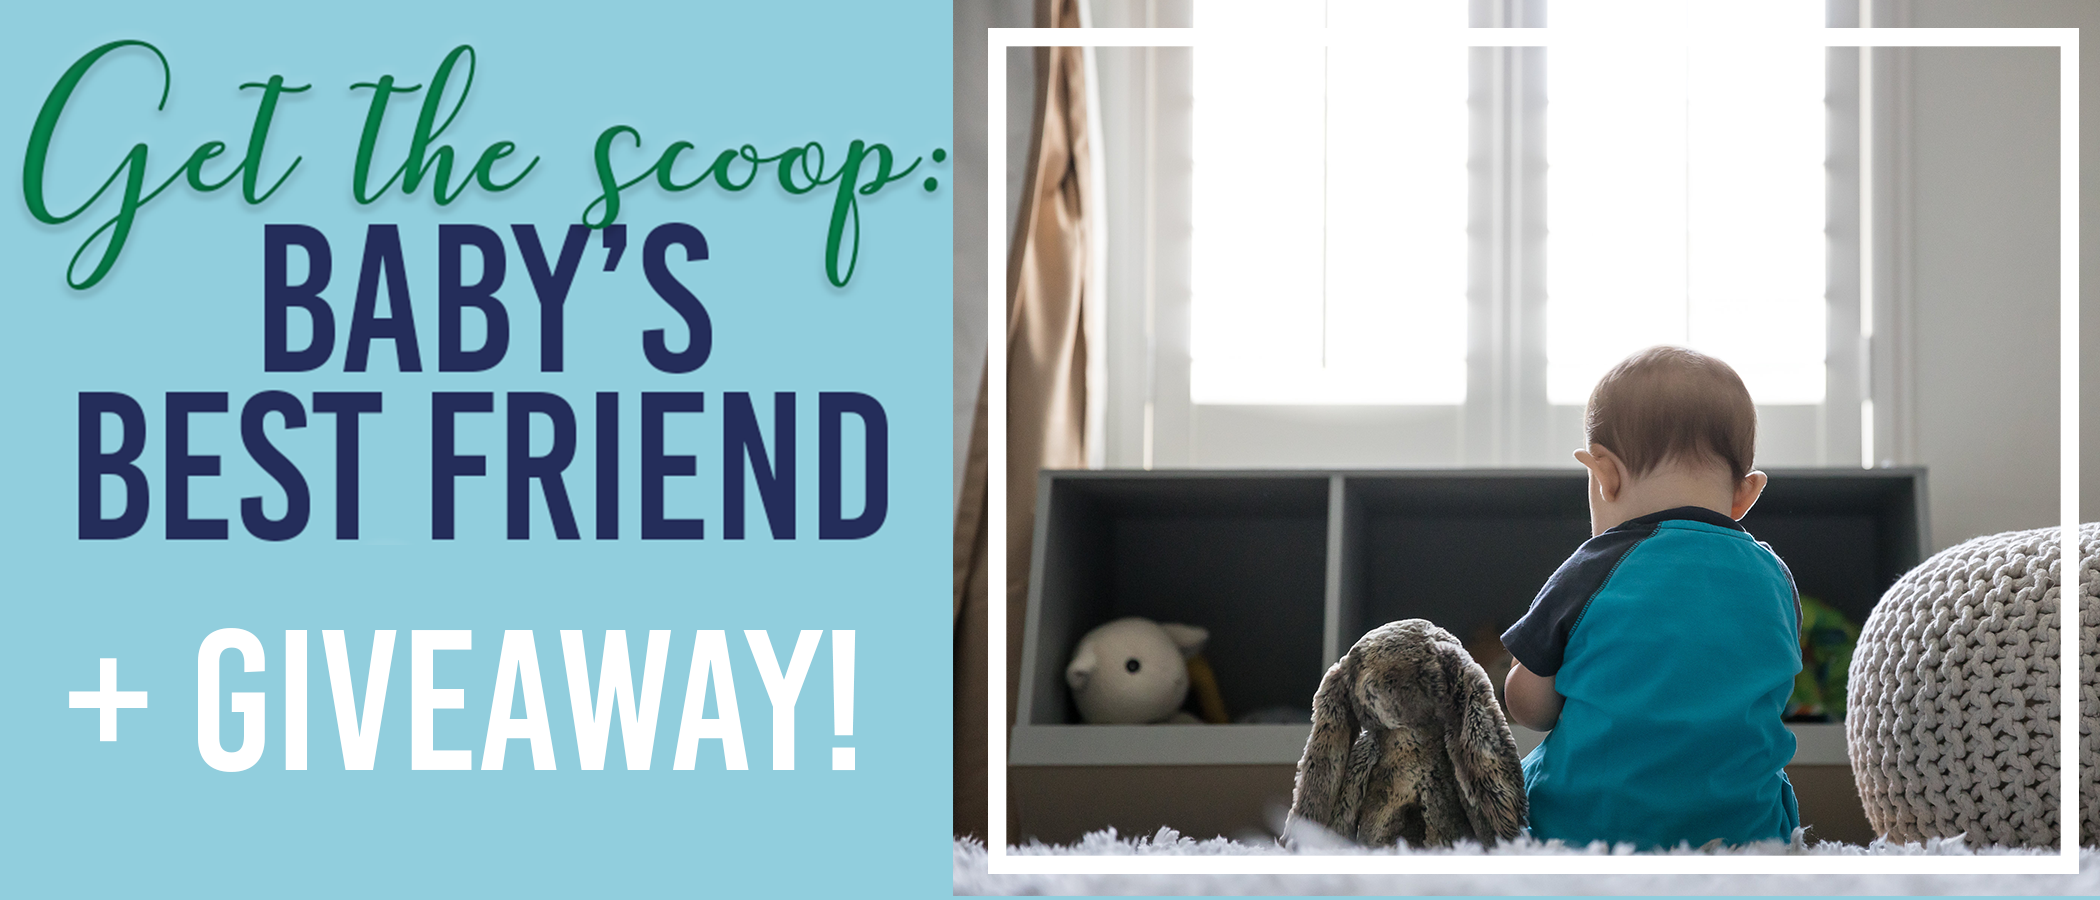 Baby's Best Friend + A Giveaway!